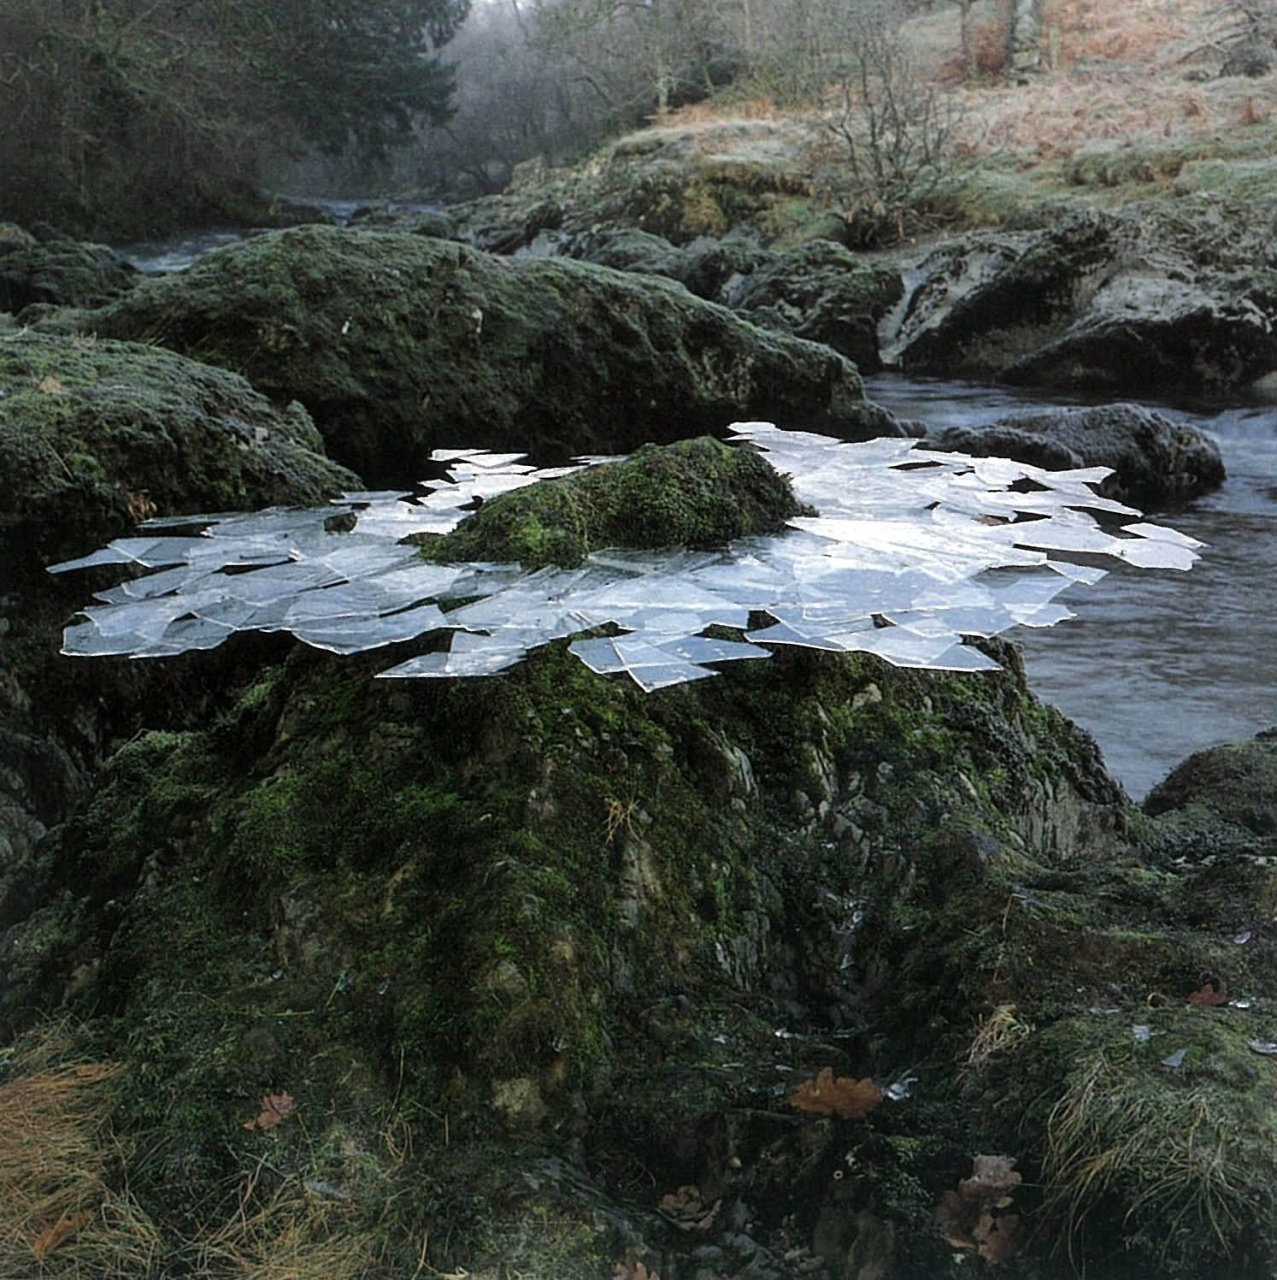 andy-goldsworthy-leaf-sculptures-thin-ice-formed-overnight-lifted-from-river-pools-frozen-arou...jpg